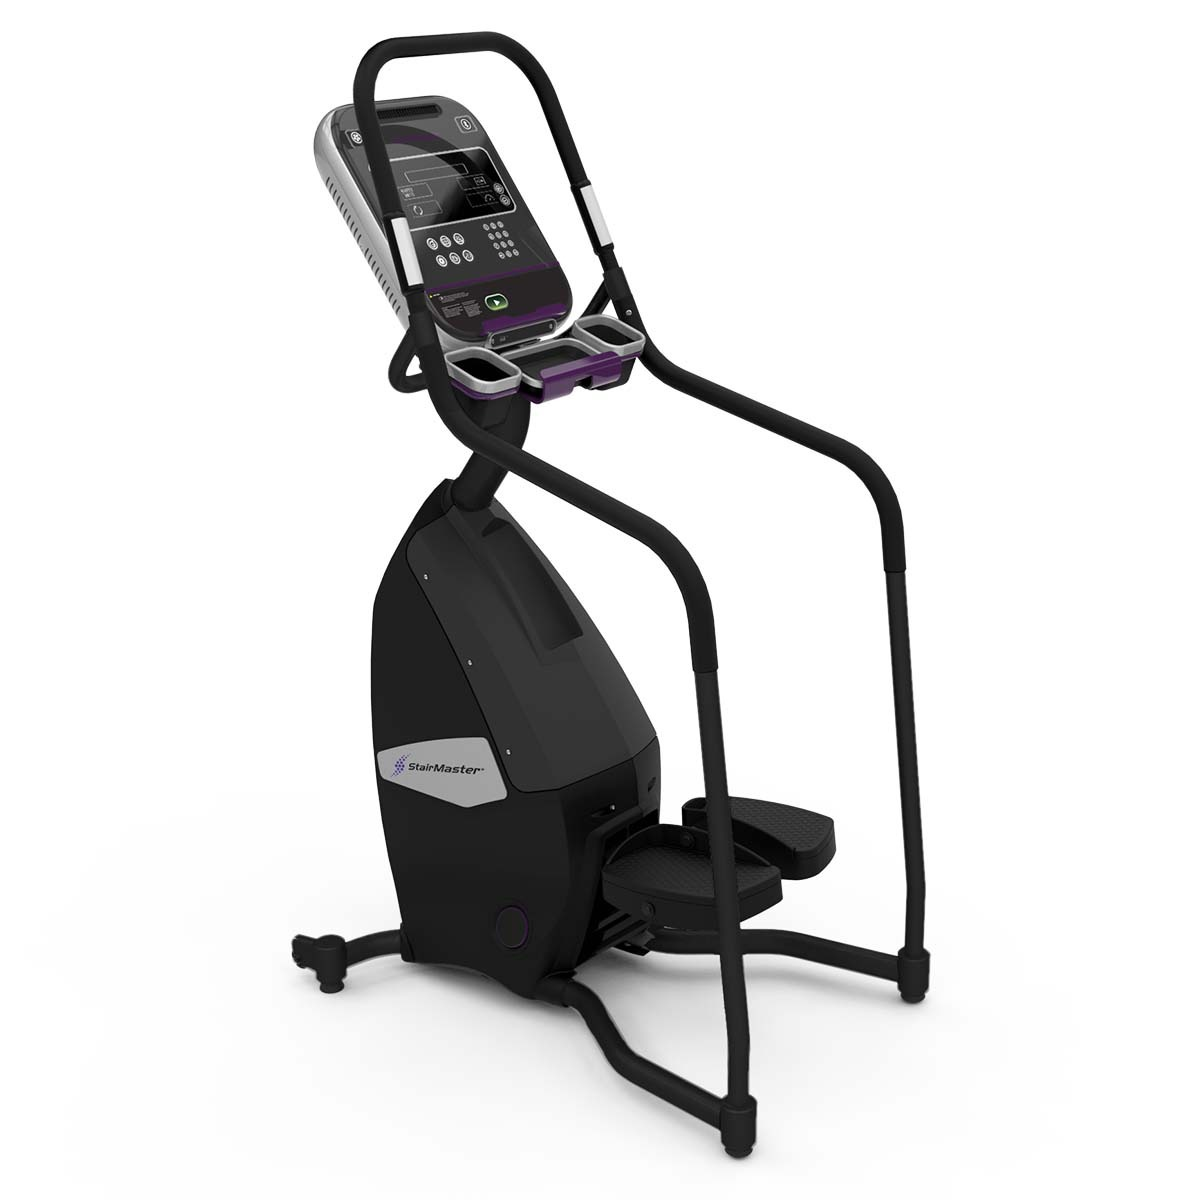 Surrey StairMaster Free Climber - Stepper - Lifestyle Equipment